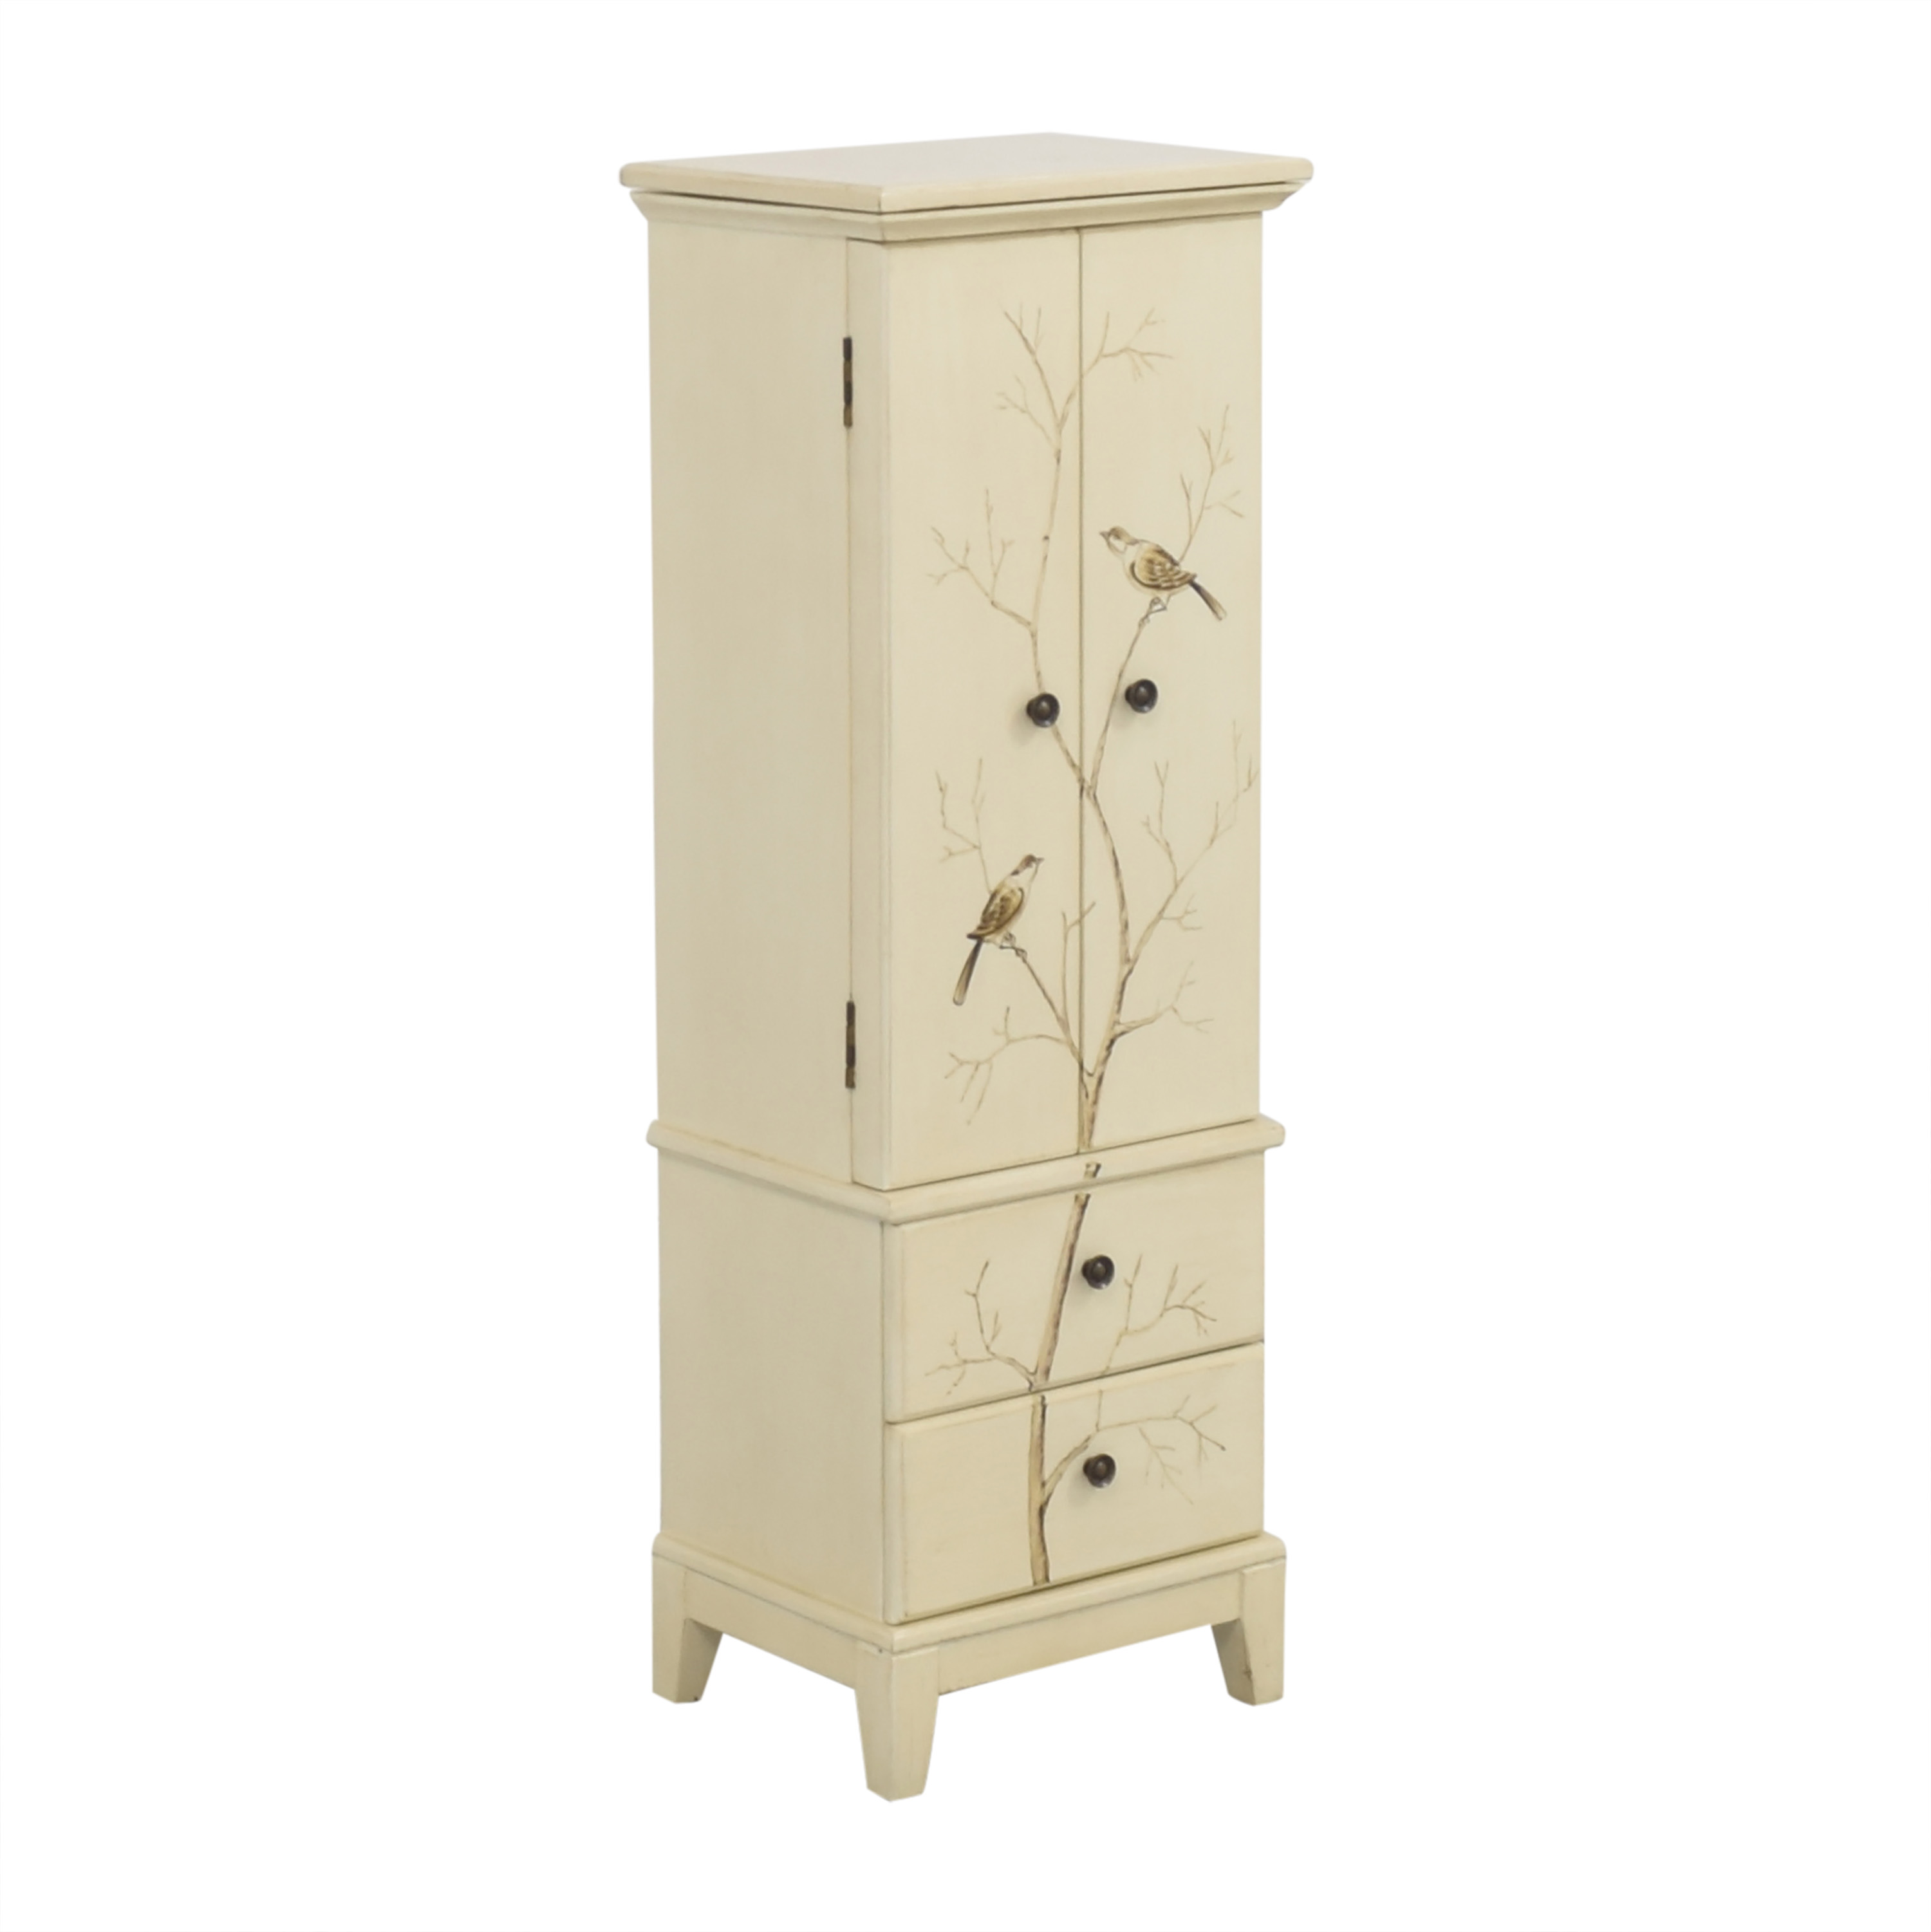 Home Decorators Collection Home Decorators Collection Chirp Jewelry Armoire second hand